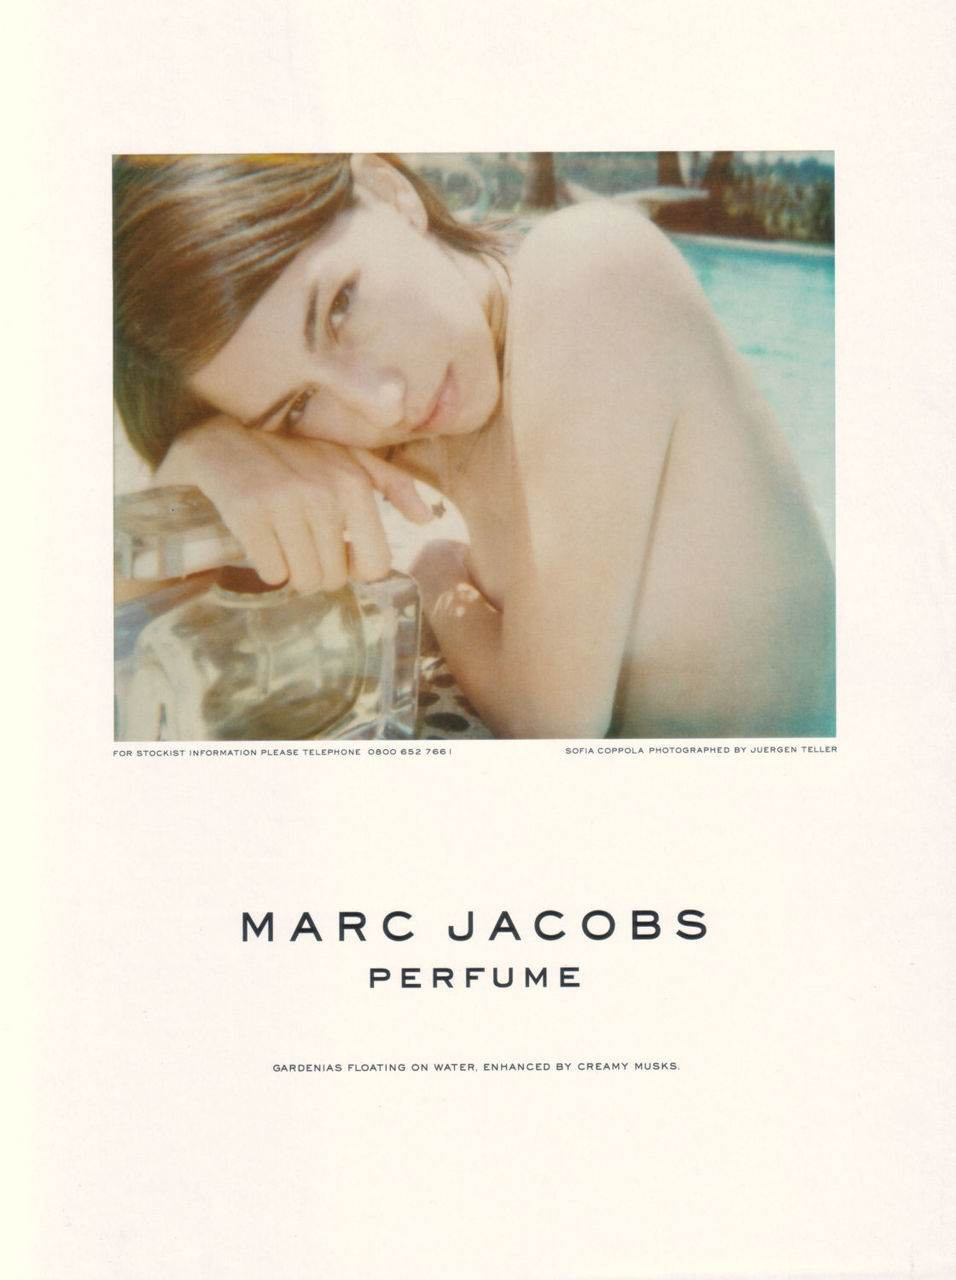 fashion ad campaigns, marc jacobs, sophia coppola